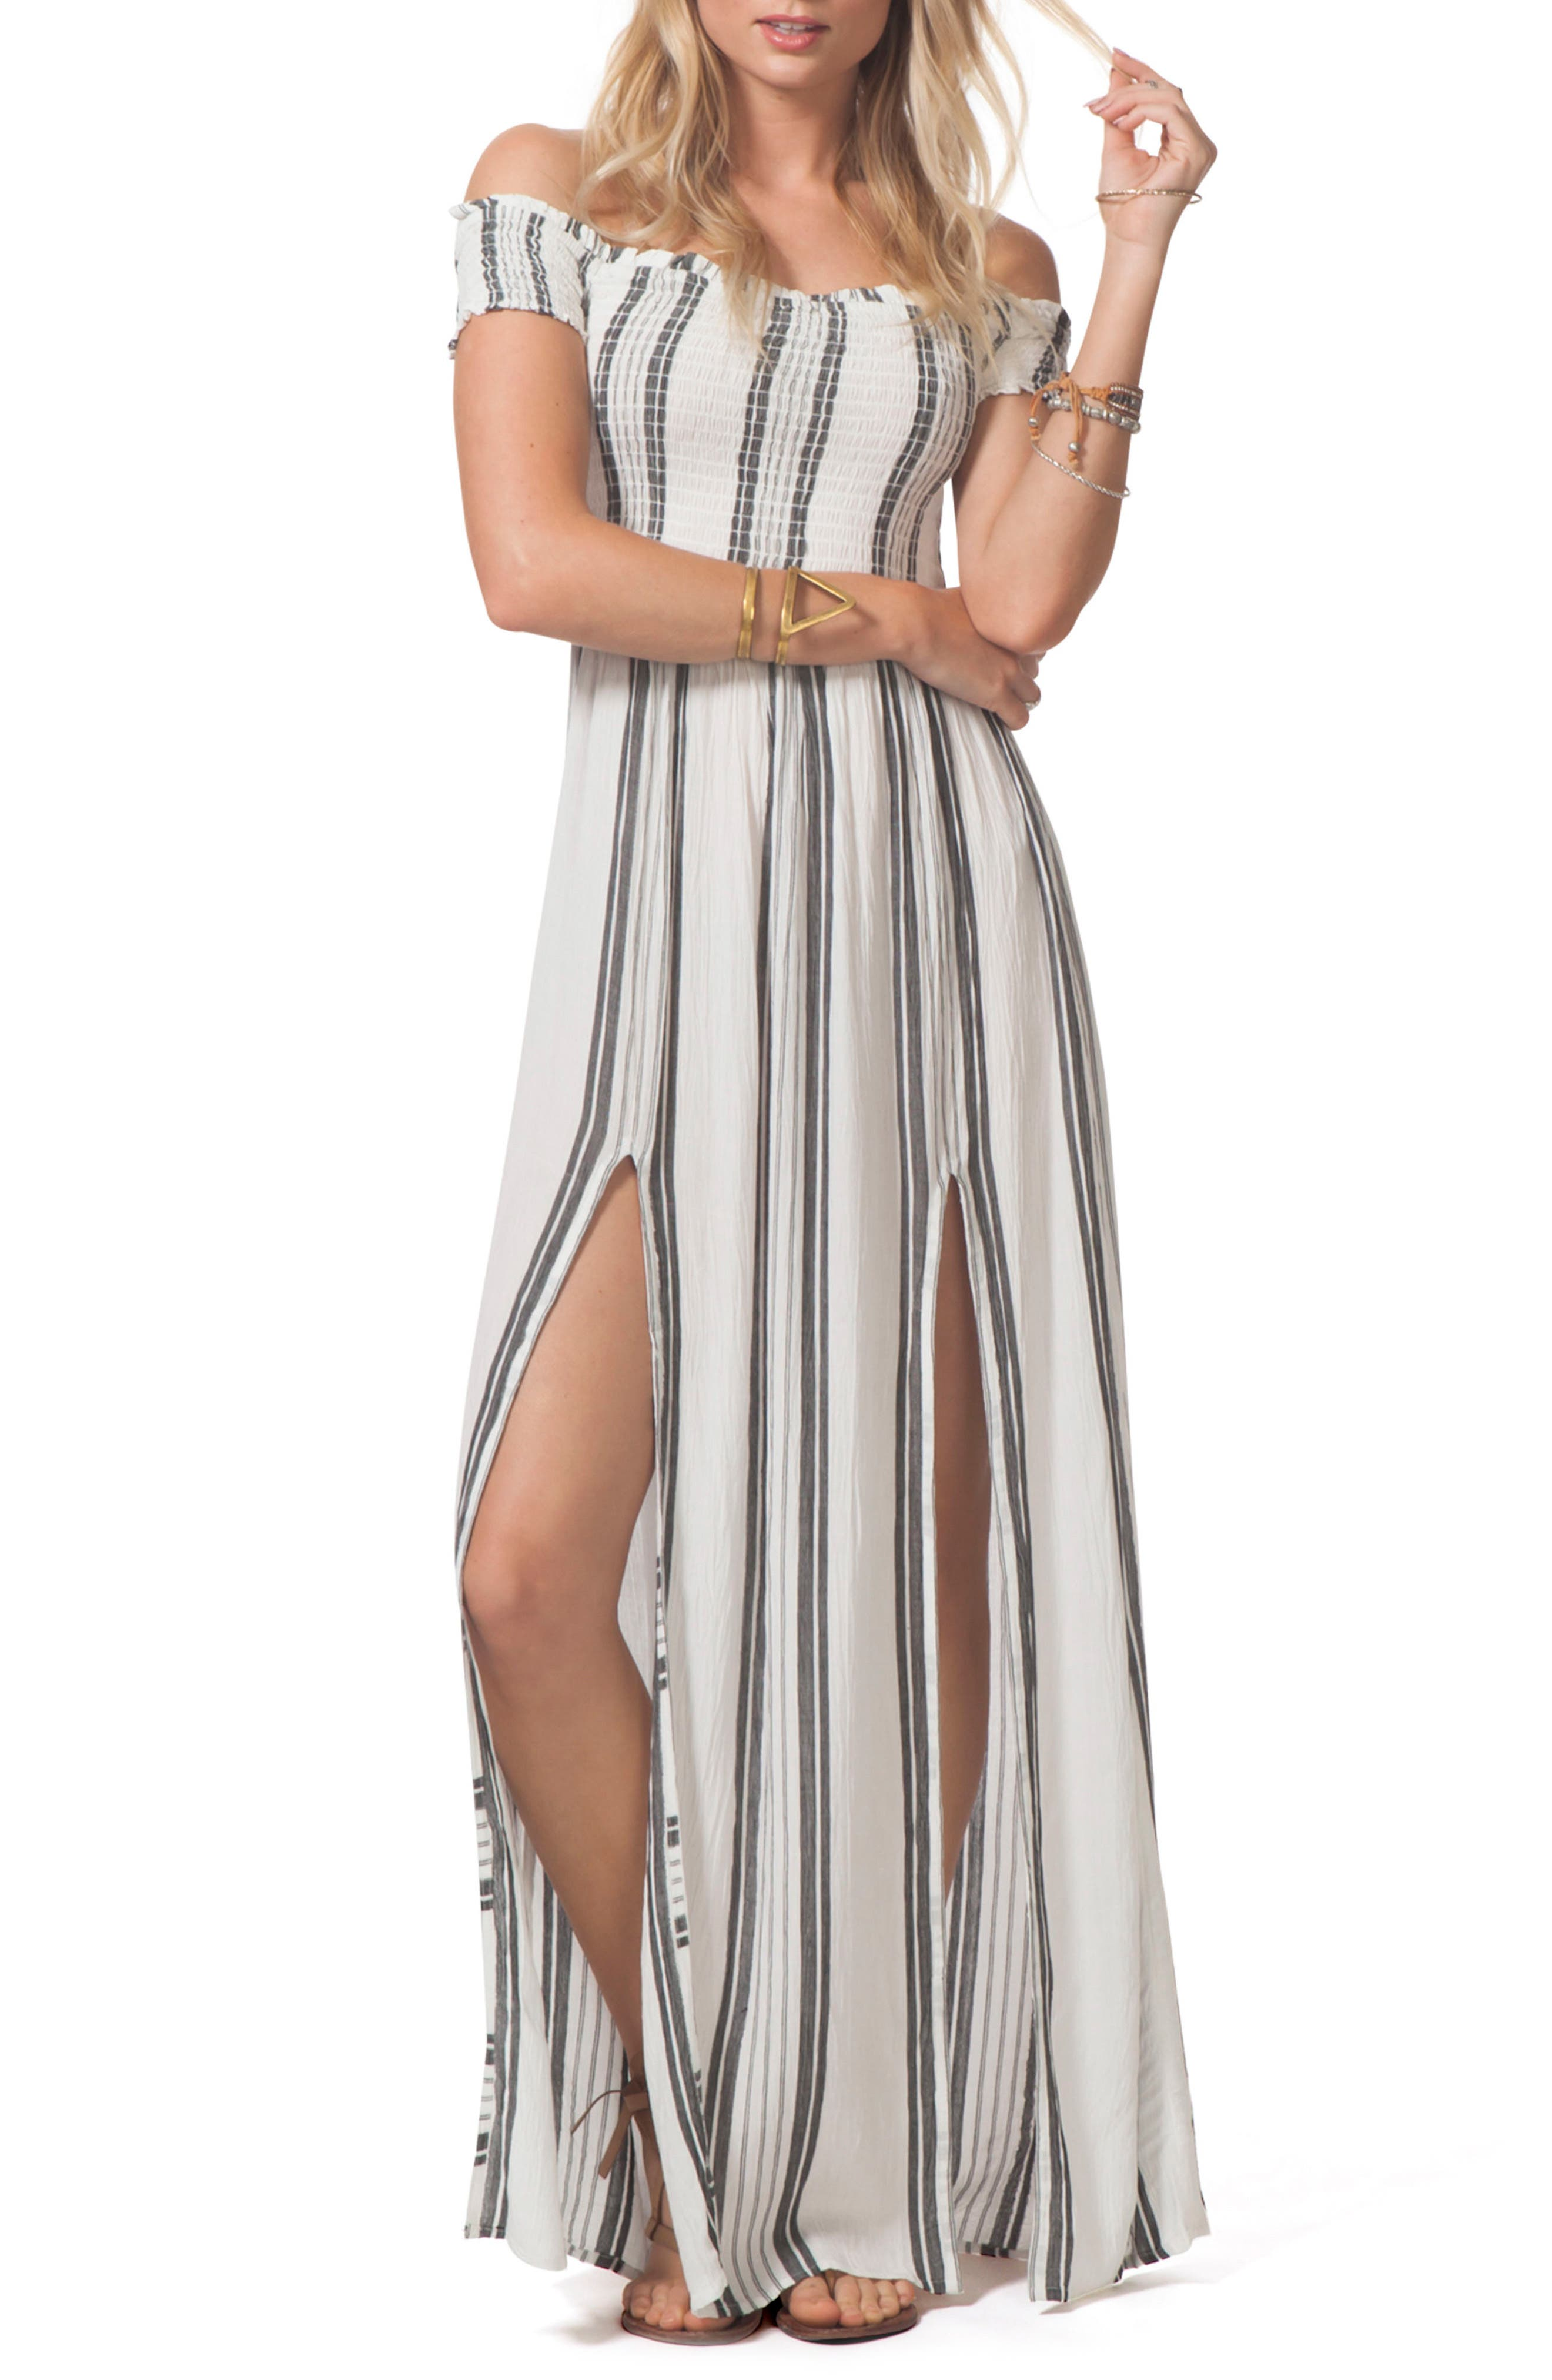 Soulmate Off the Shoulder Maxi Dress,                             Main thumbnail 1, color,                             White